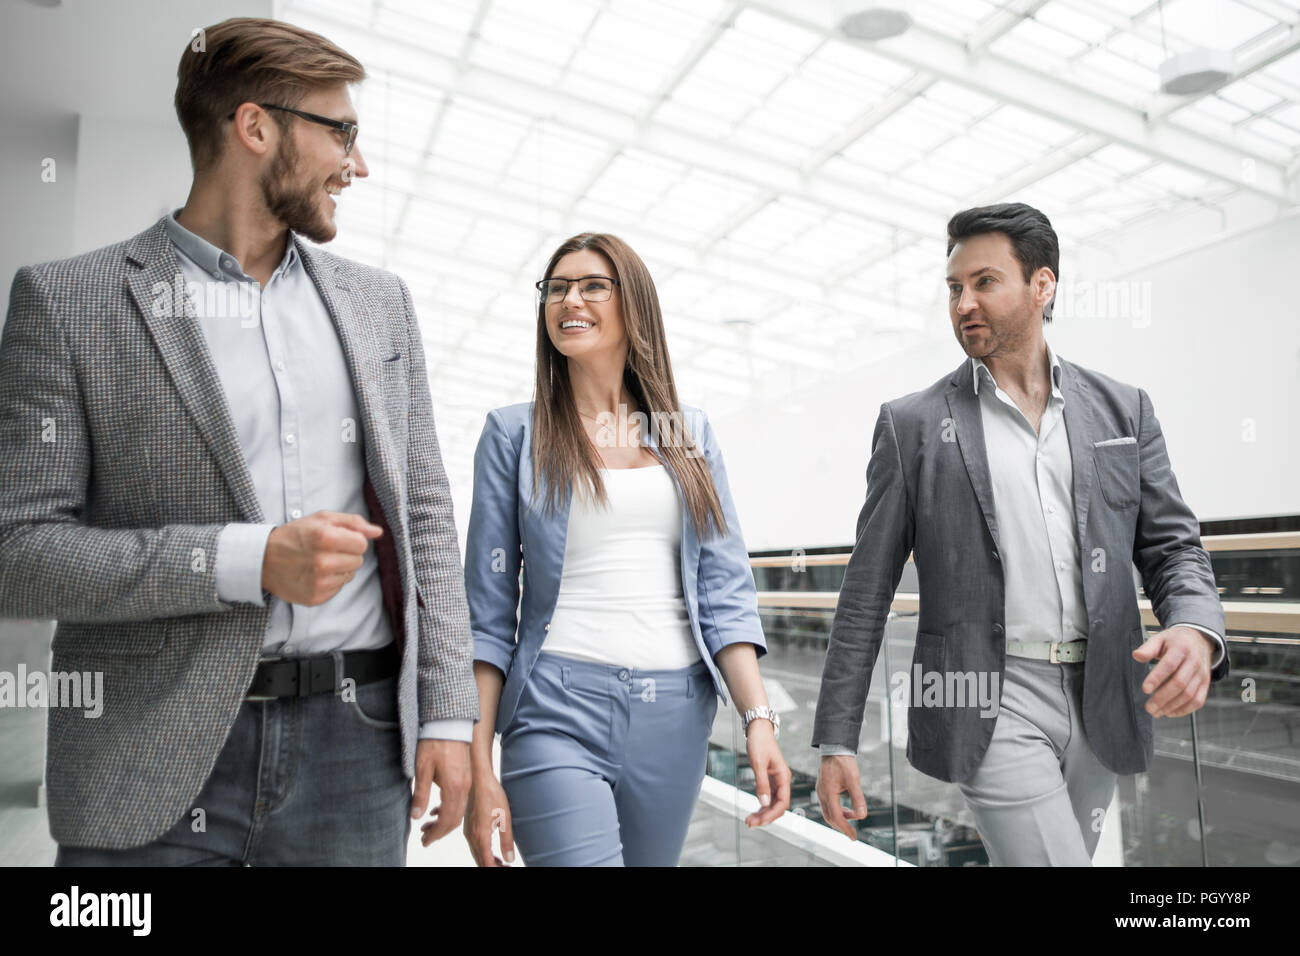 group of managers talking in the business cente - Stock Image